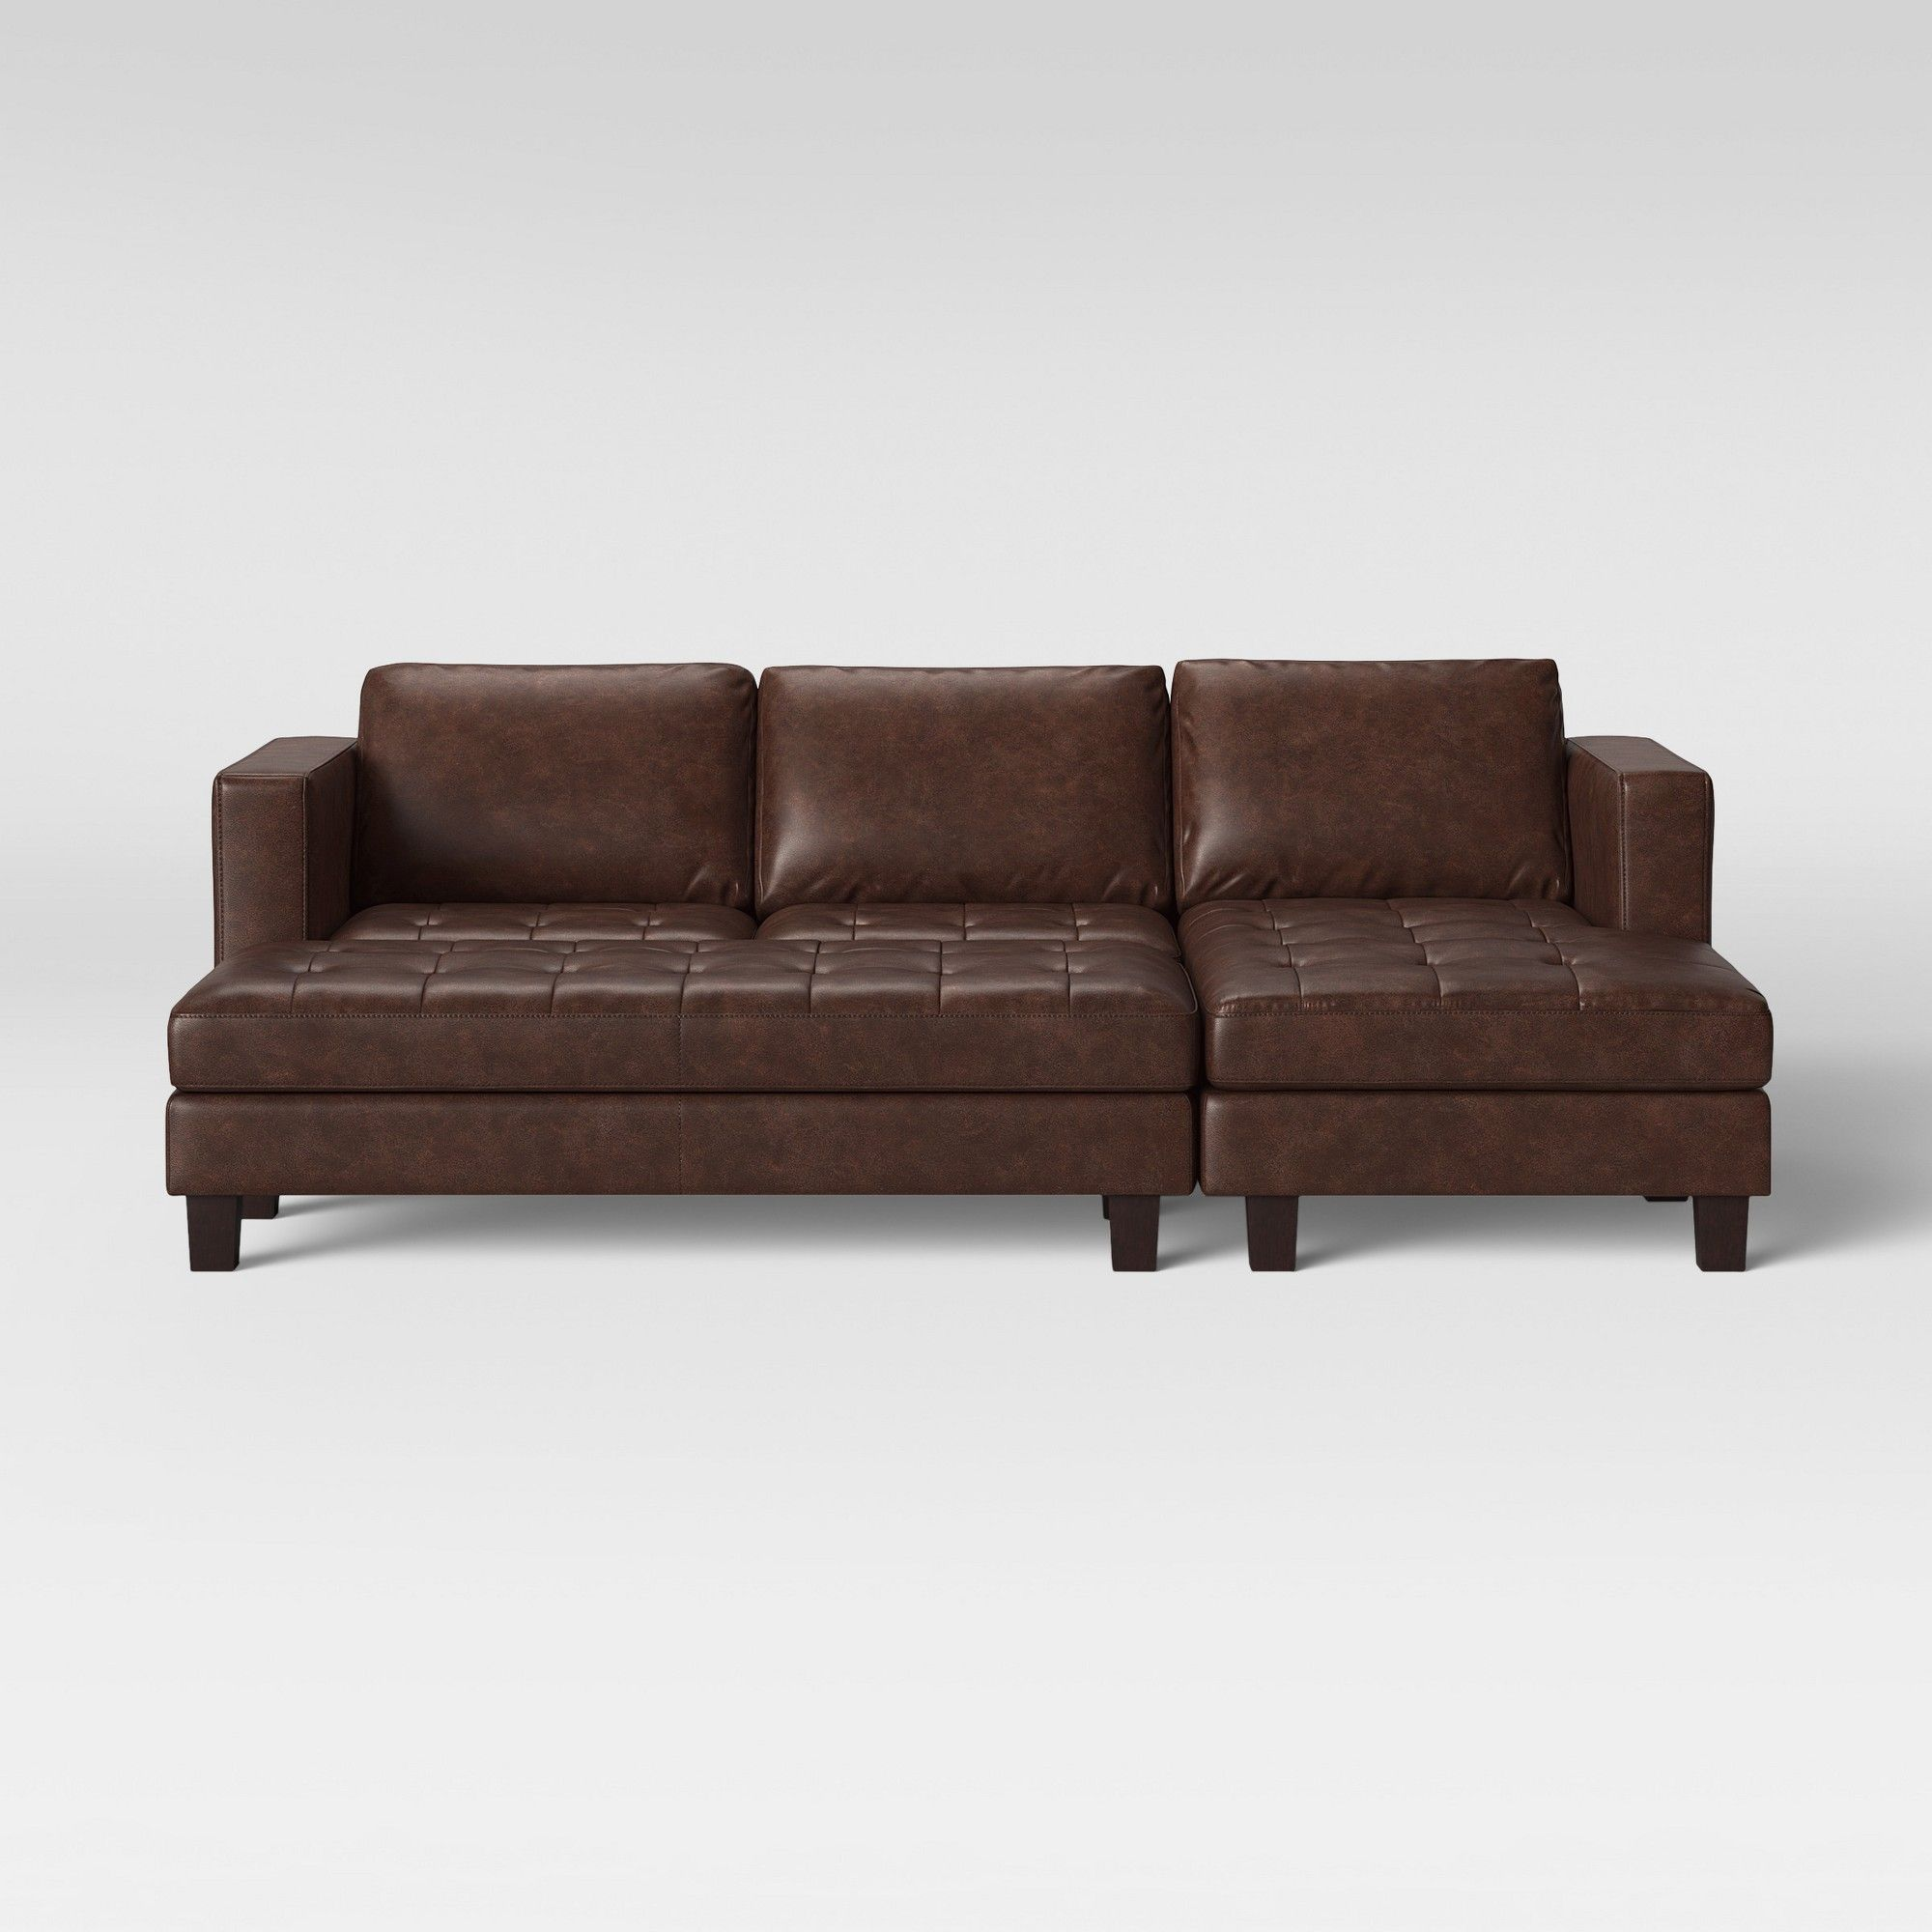 Faux Leather Sofa In A Box Edgemere Sofa Sectional With Tufting And Large Ottoman Brown